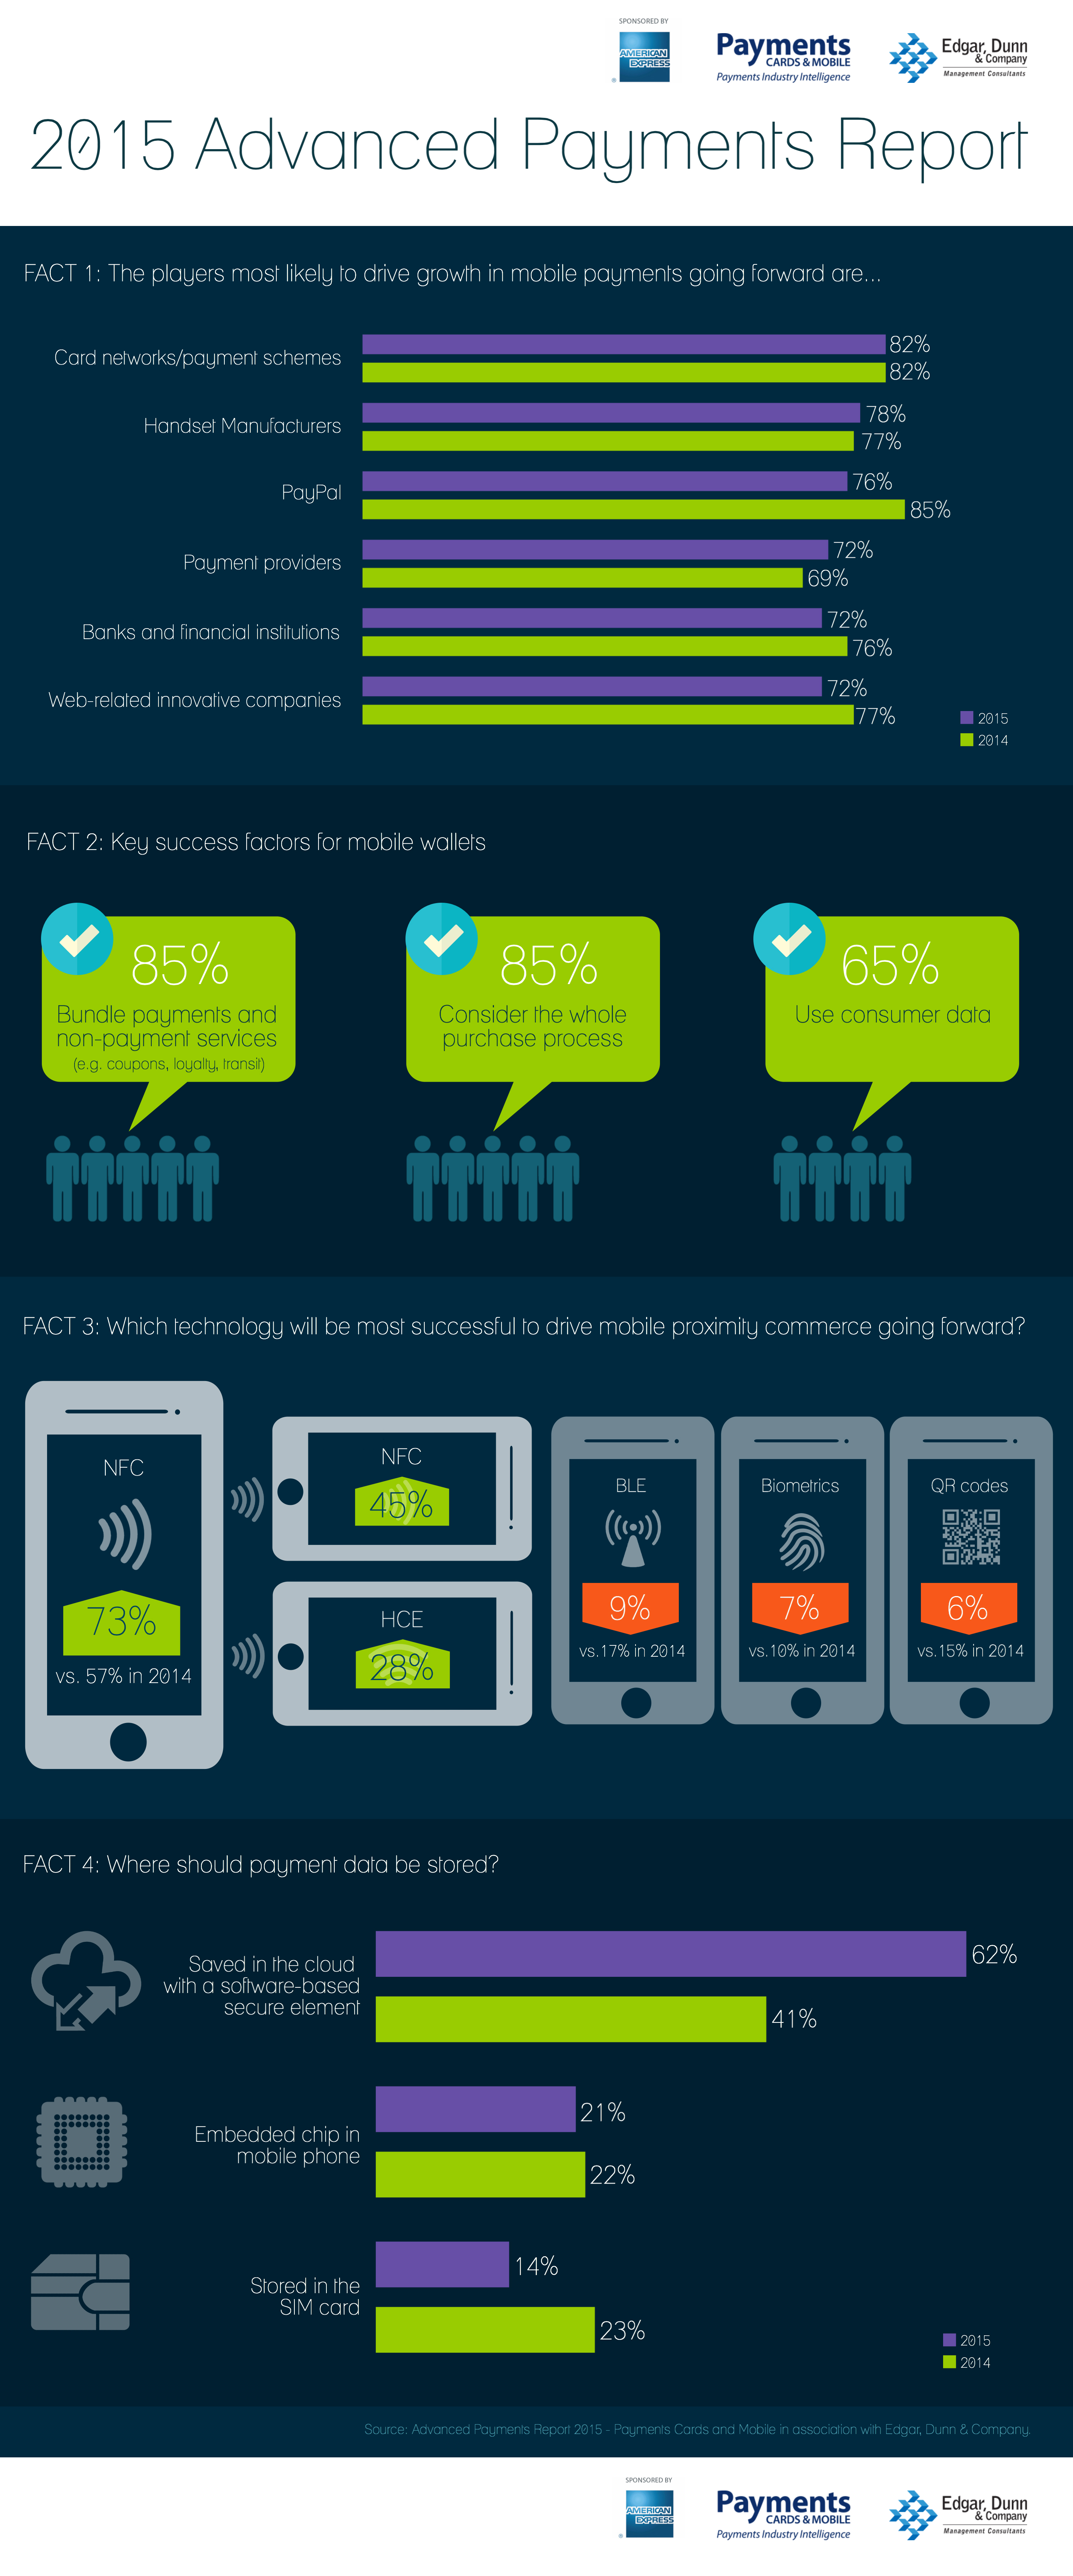 Advanced Payments Report 2015 Infographic